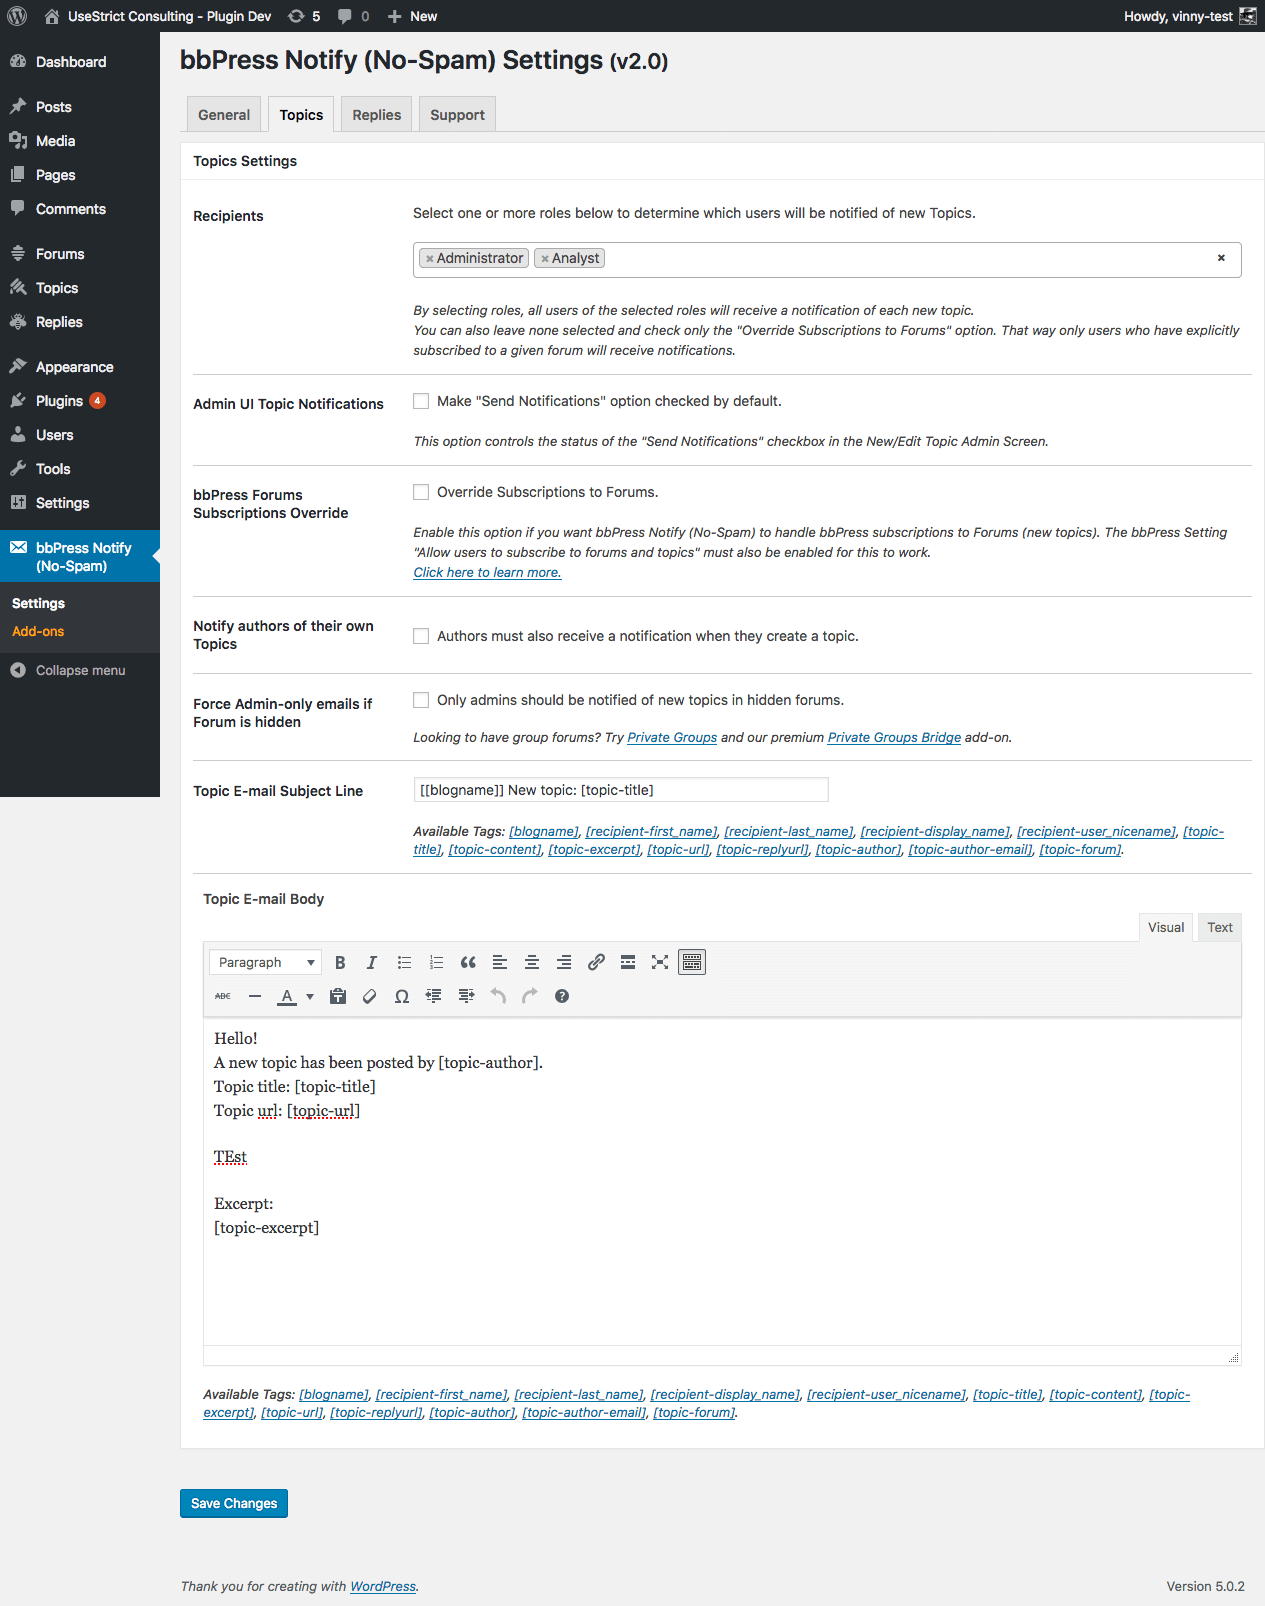 Ability to send notification when managing topics/replies in the admin UI